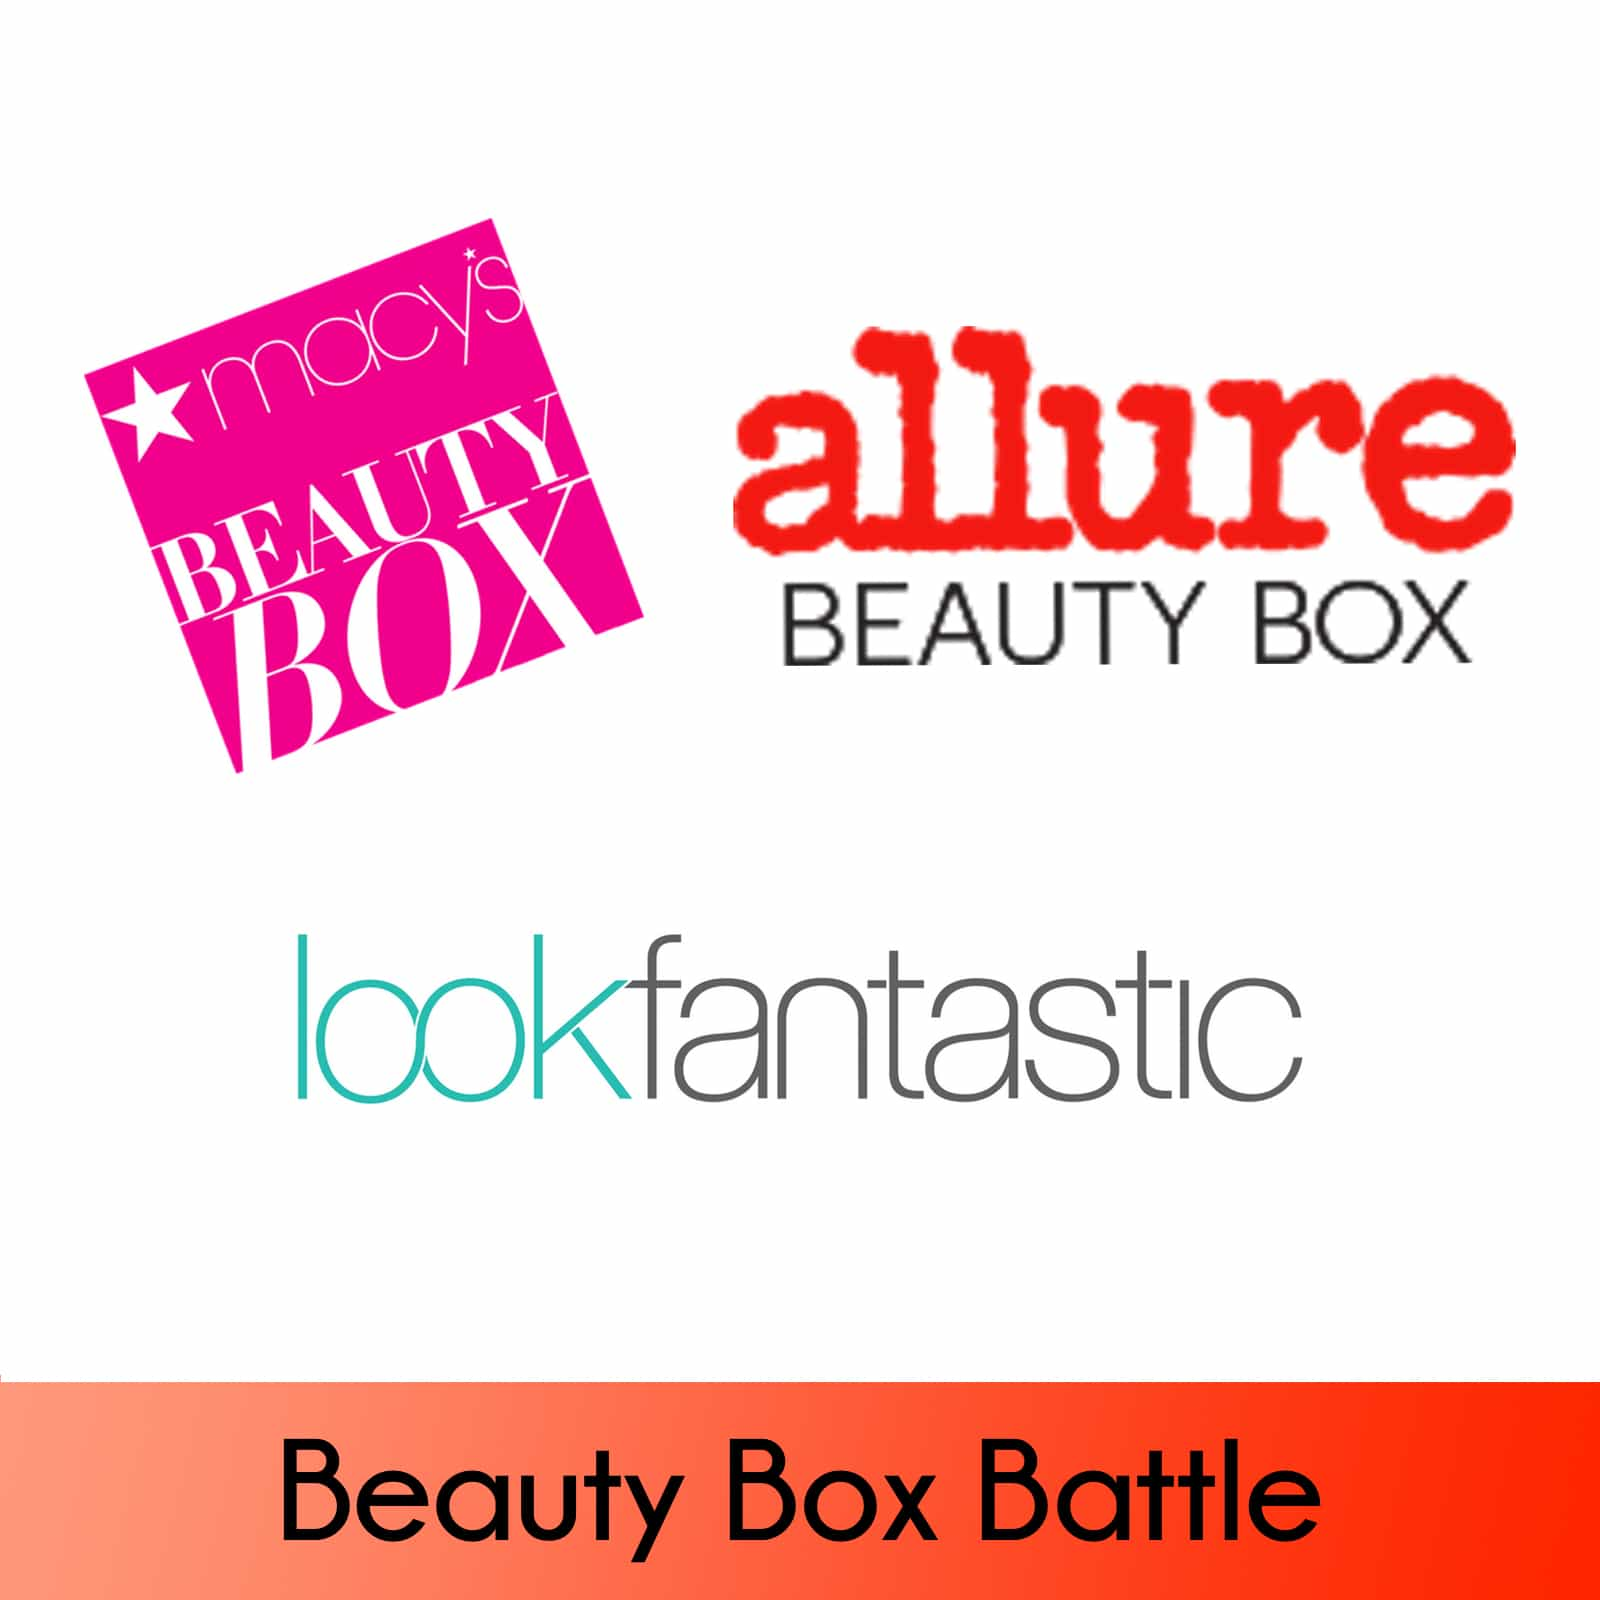 Macy's Beauty Box vs Allure Beauty Box vs Lookfantastic March 2018 Beauty Boxes!